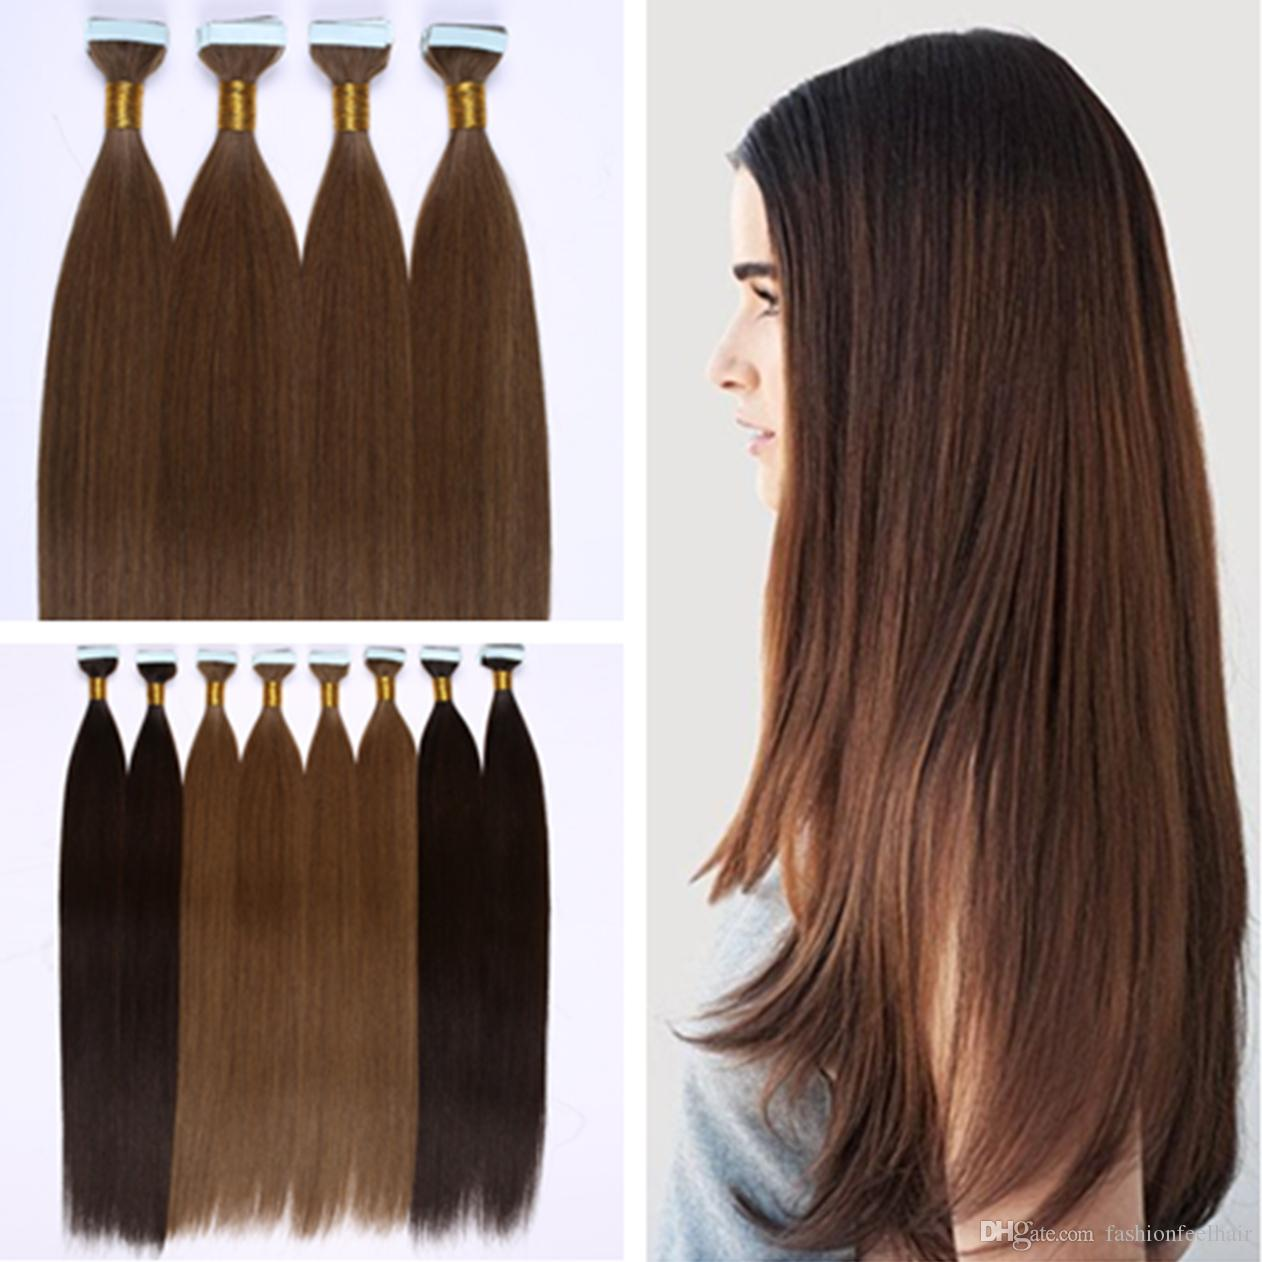 Dhl Invisible Pu Skin Weft Hair Extensions 100 Indian Human Hair